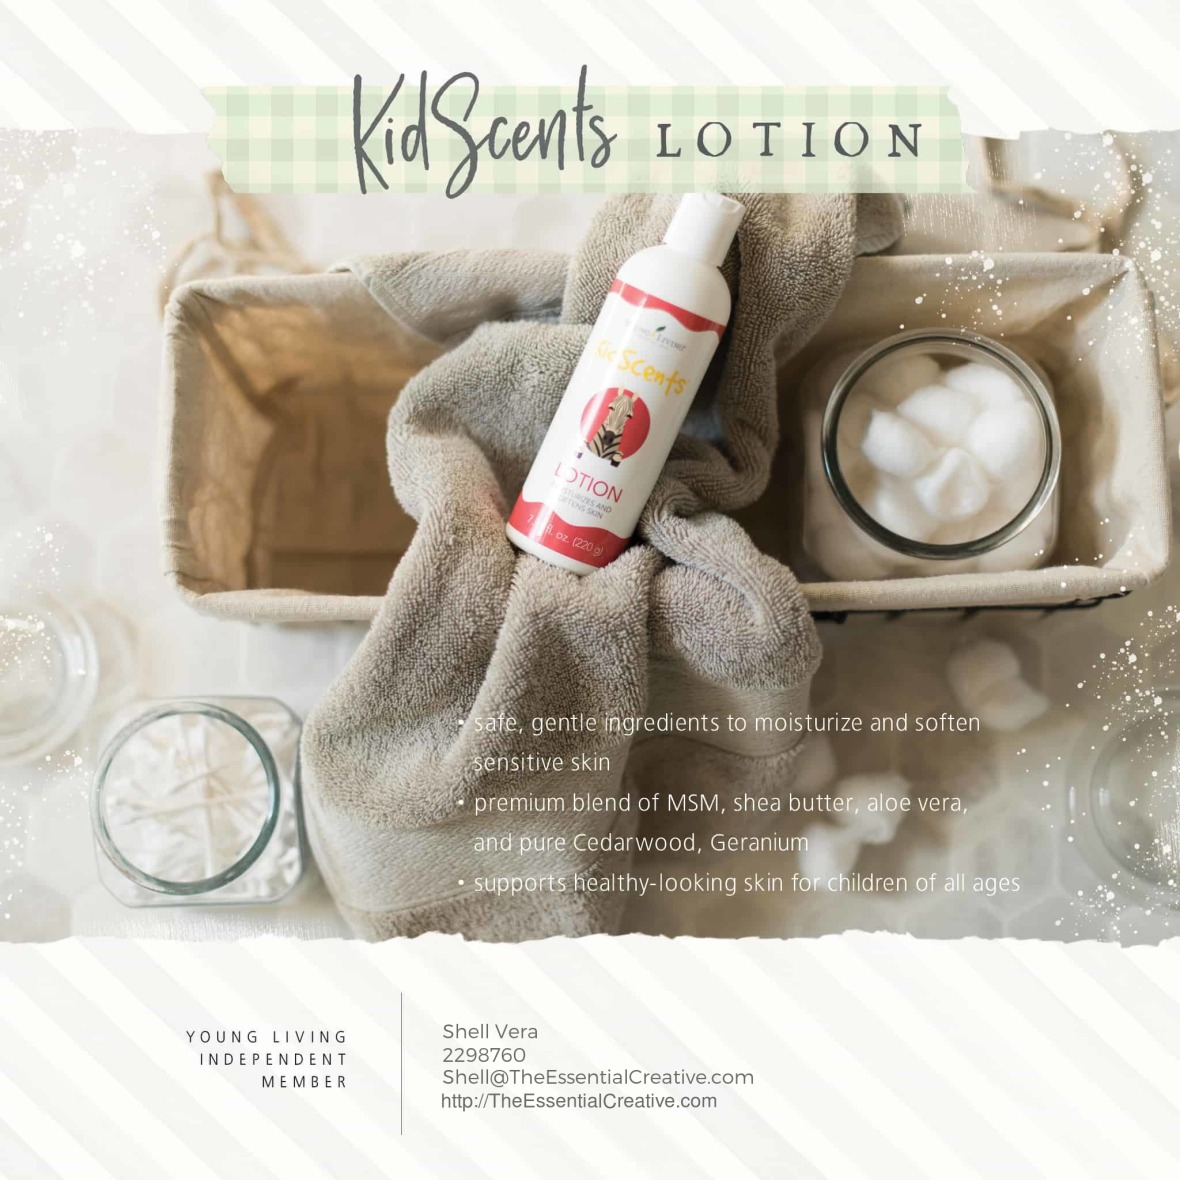 KidScents10-Lotion